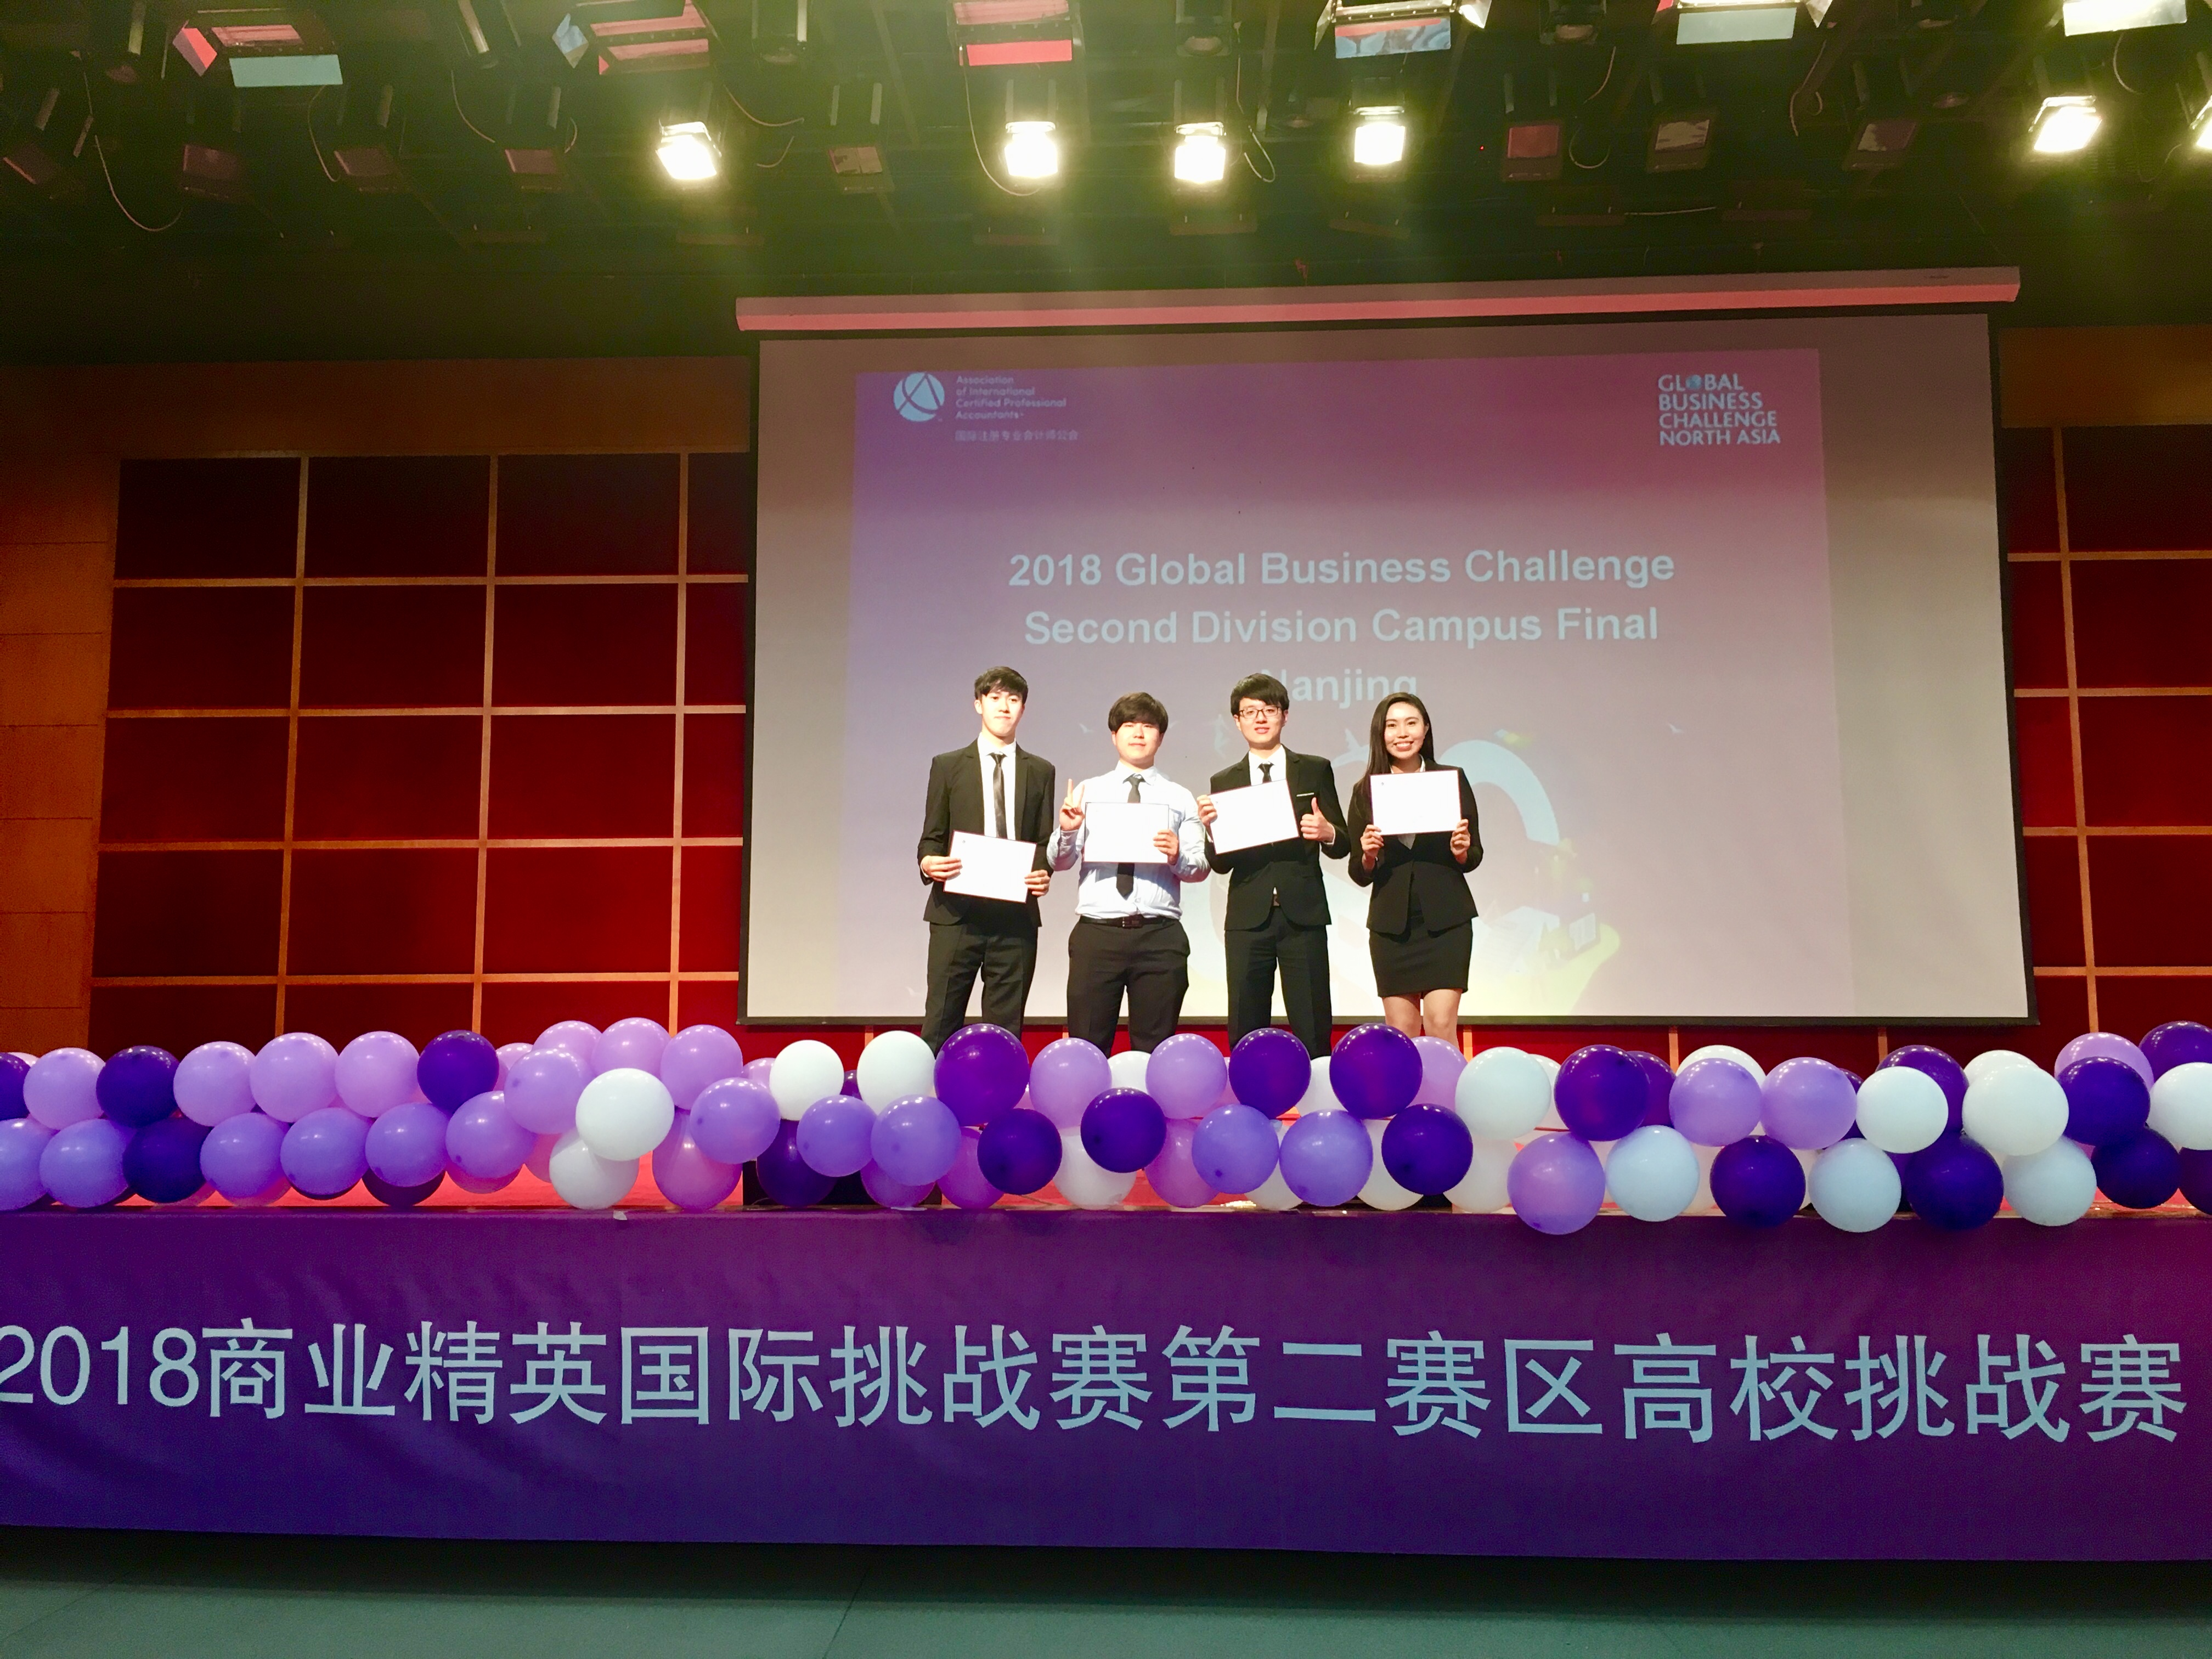 Champion in the Global Business Challenge 2018  Second Division Campus Final - Nanjing